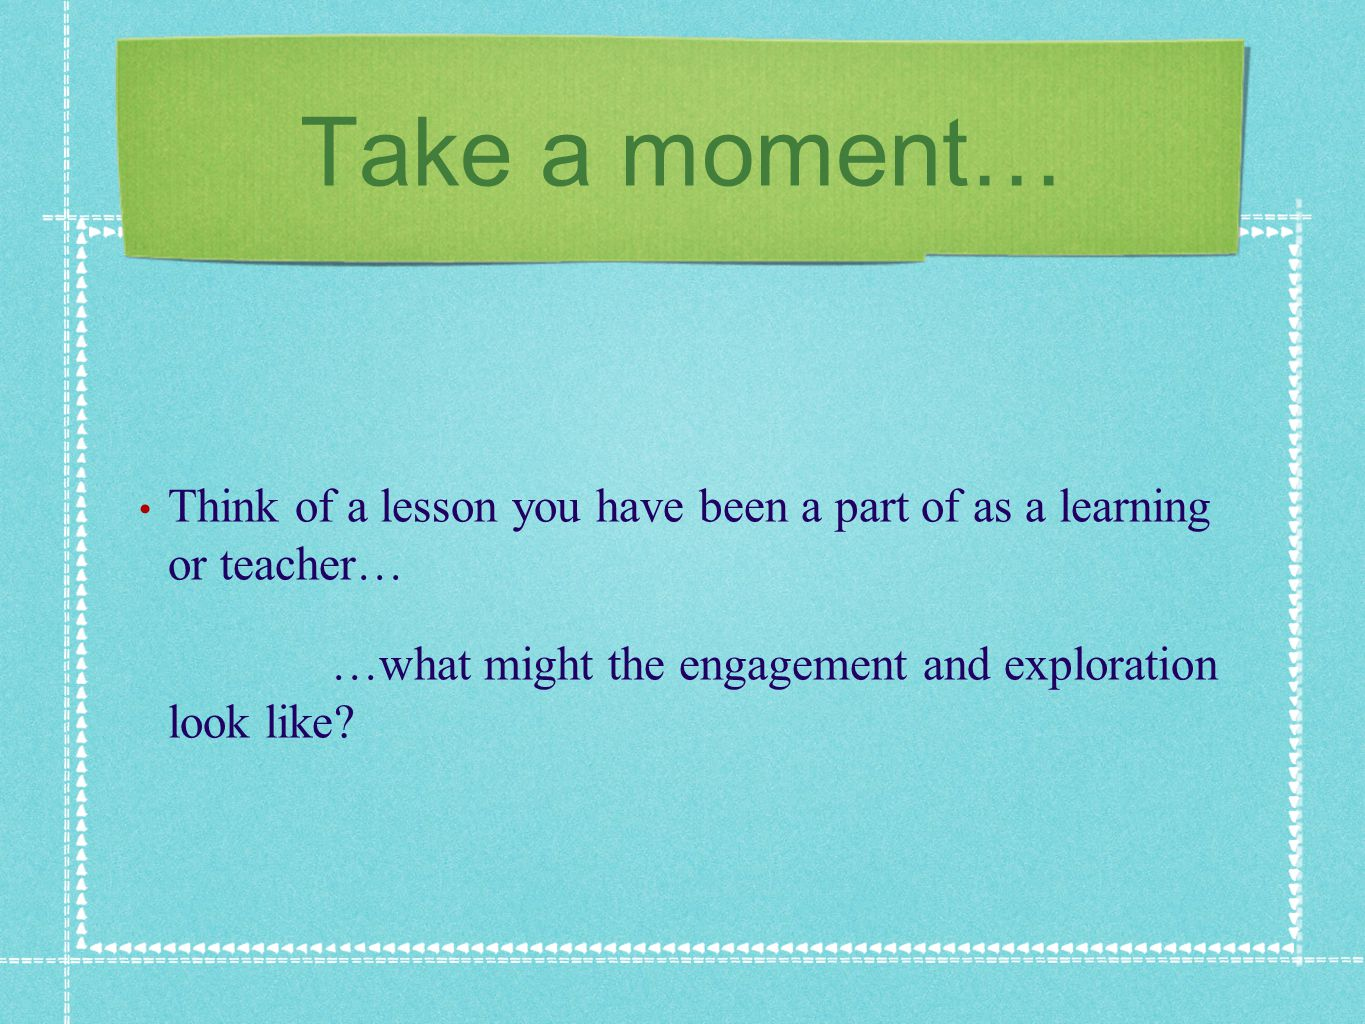 Take a moment… Think of a lesson you have been a part of as a learning or teacher… …what might the engagement and exploration look like